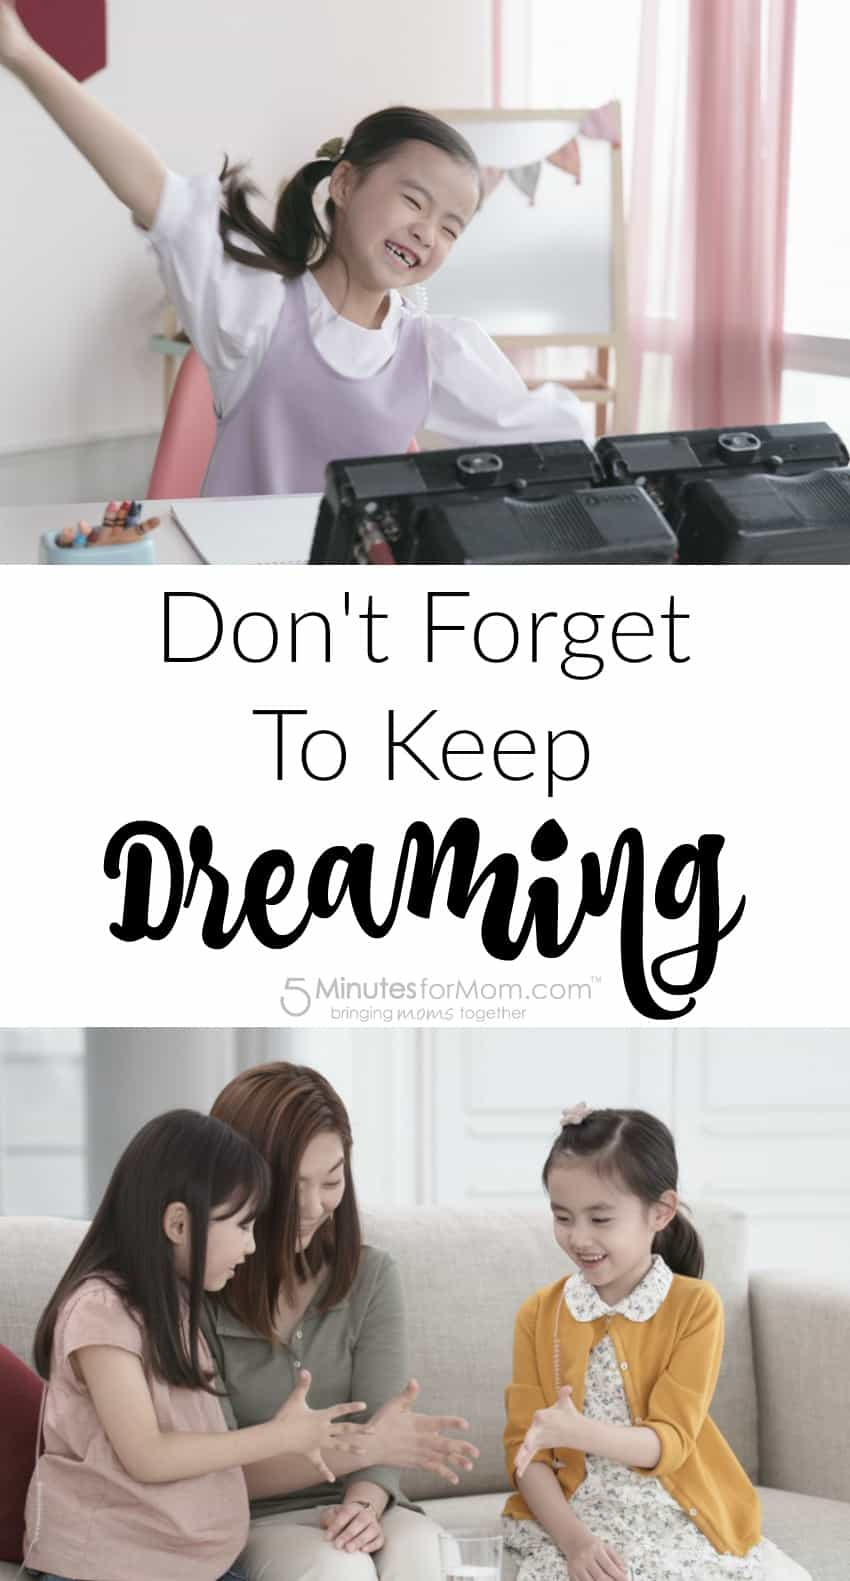 Do not forget to keep dreaming